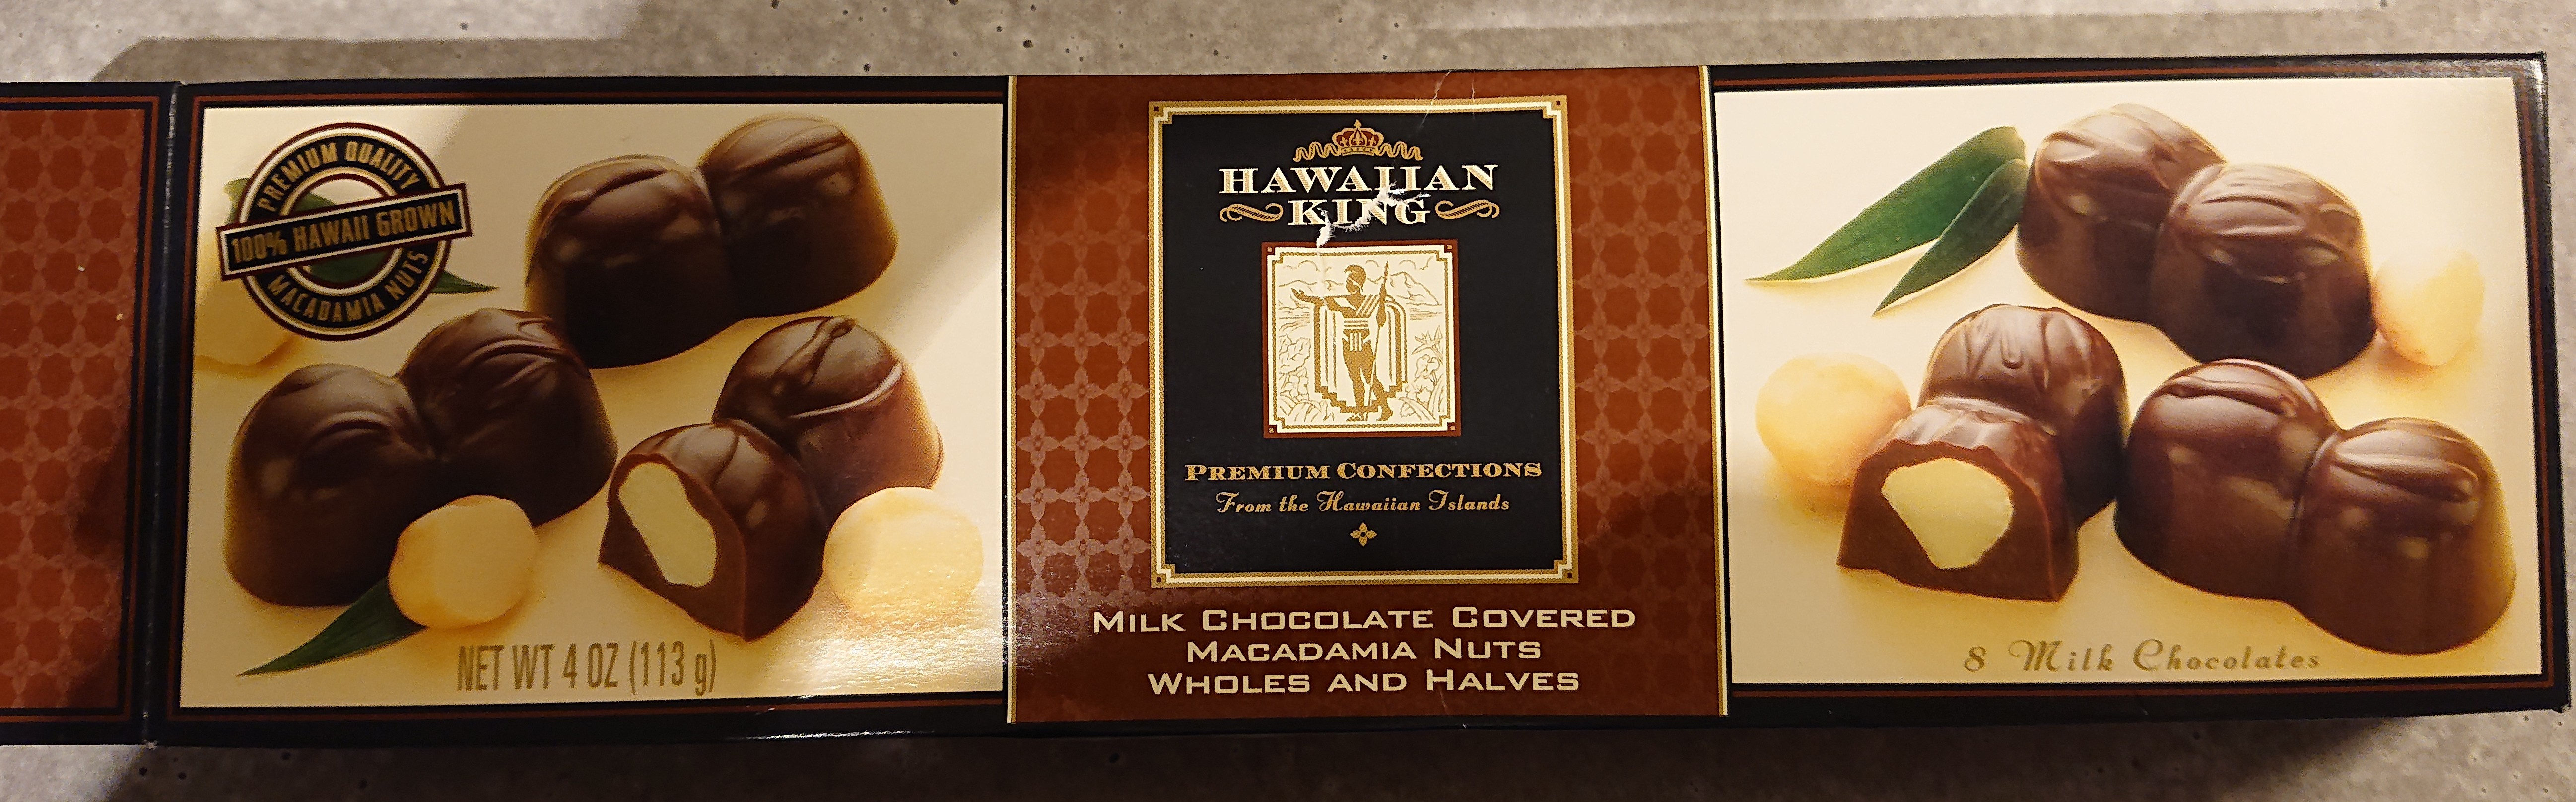 Milk chocolate covered macadamia nuts wholes and halves - Product - en